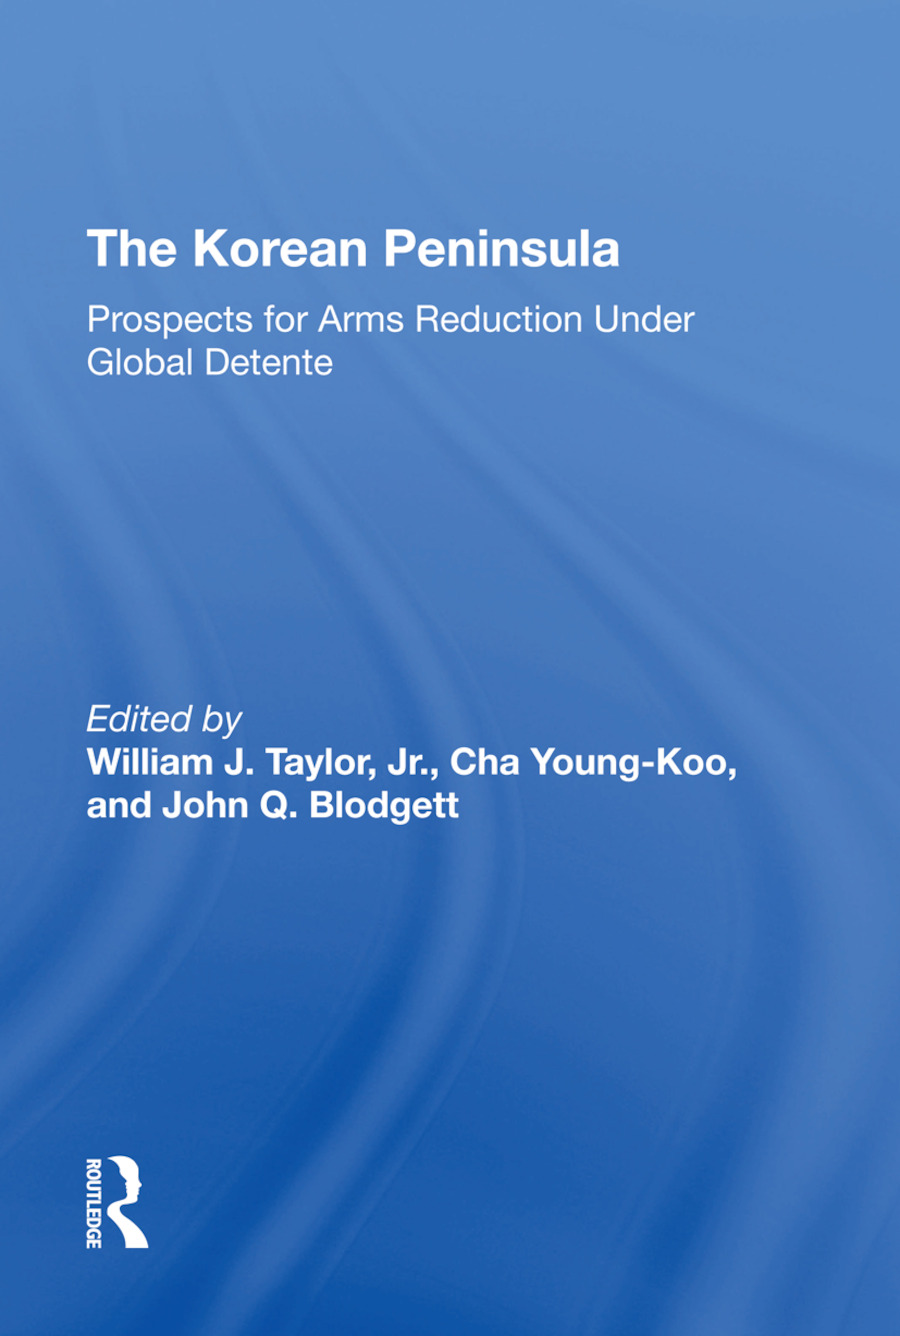 The Korean Peninsula: Prospects For Arms Reduction Under Global Detente book cover